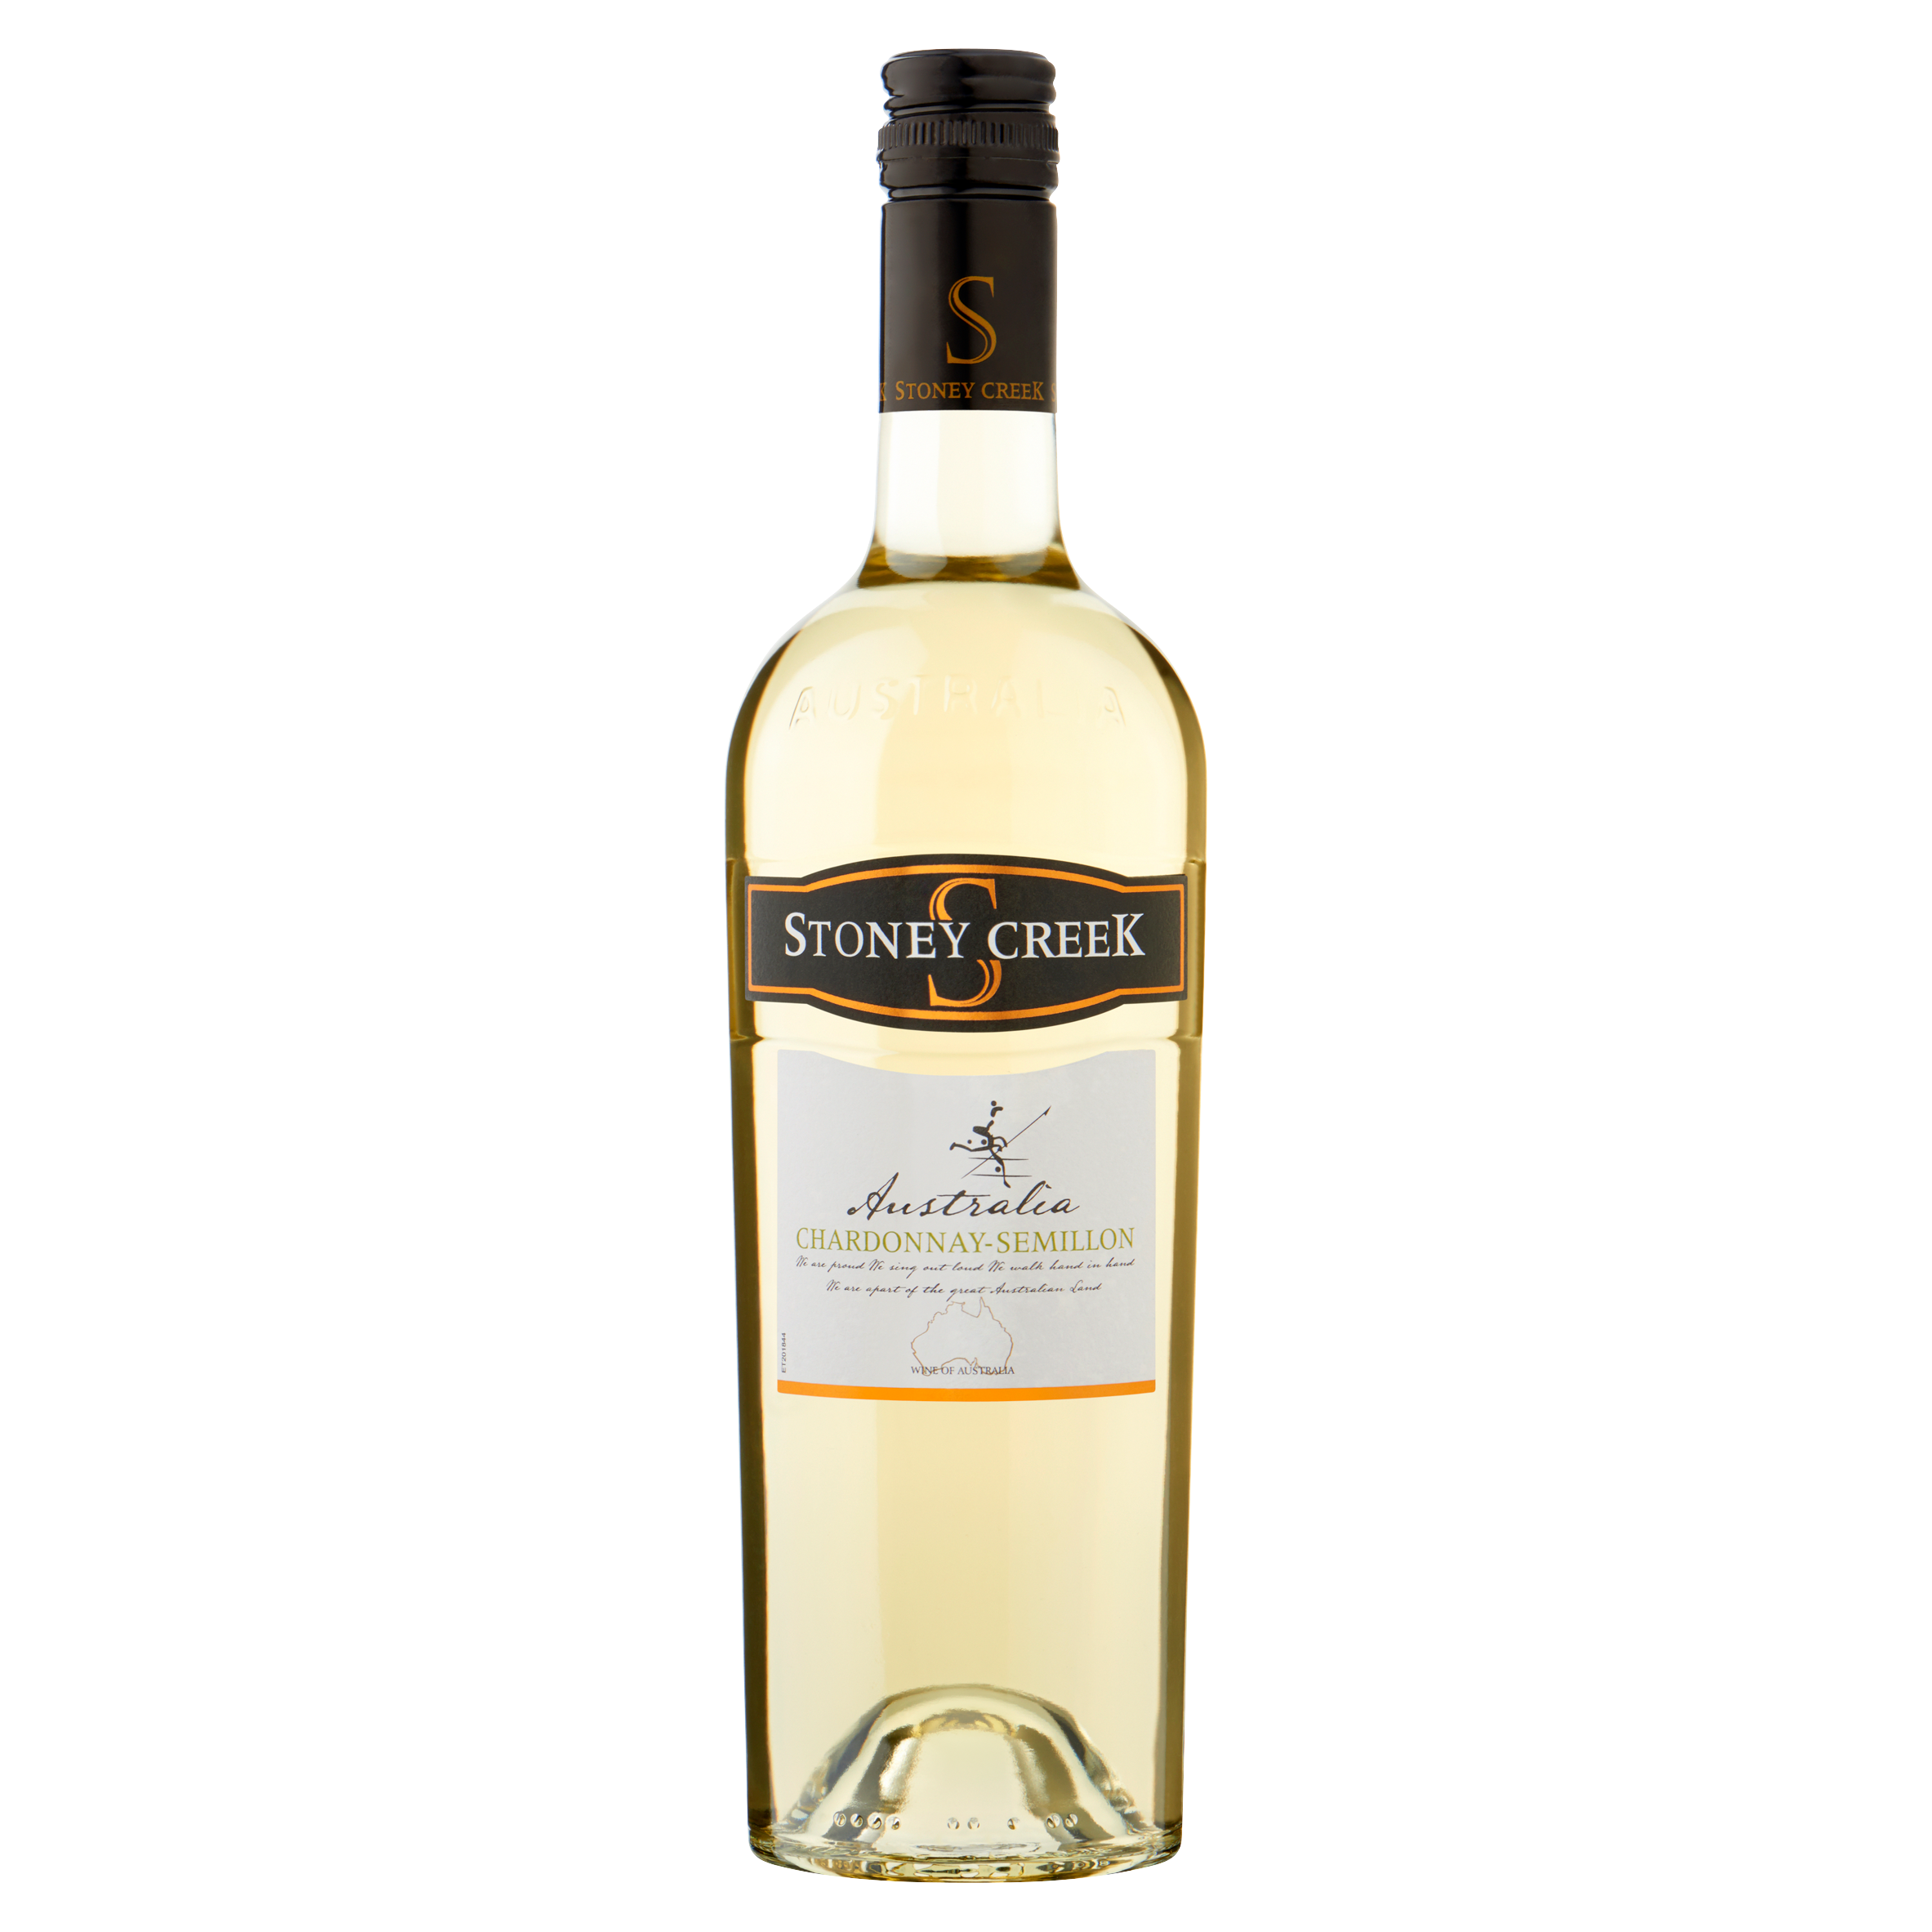 Stoney Creek Chardonnay Semillon 750 ml